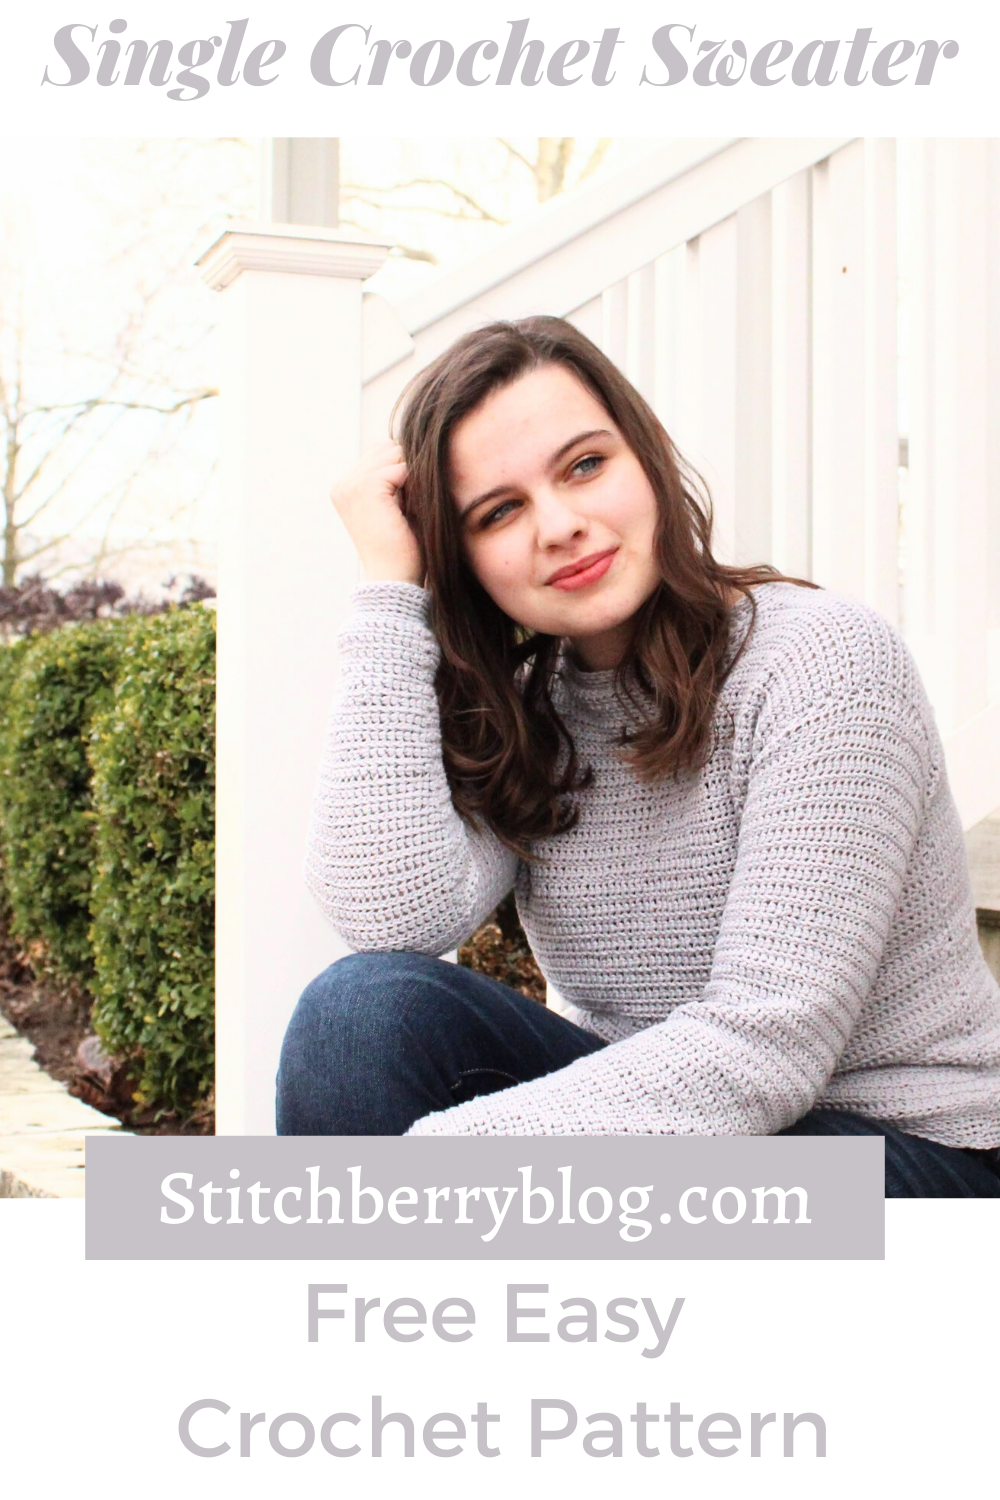 Easy Single Crochet Sweater – Free Crochet Pattern